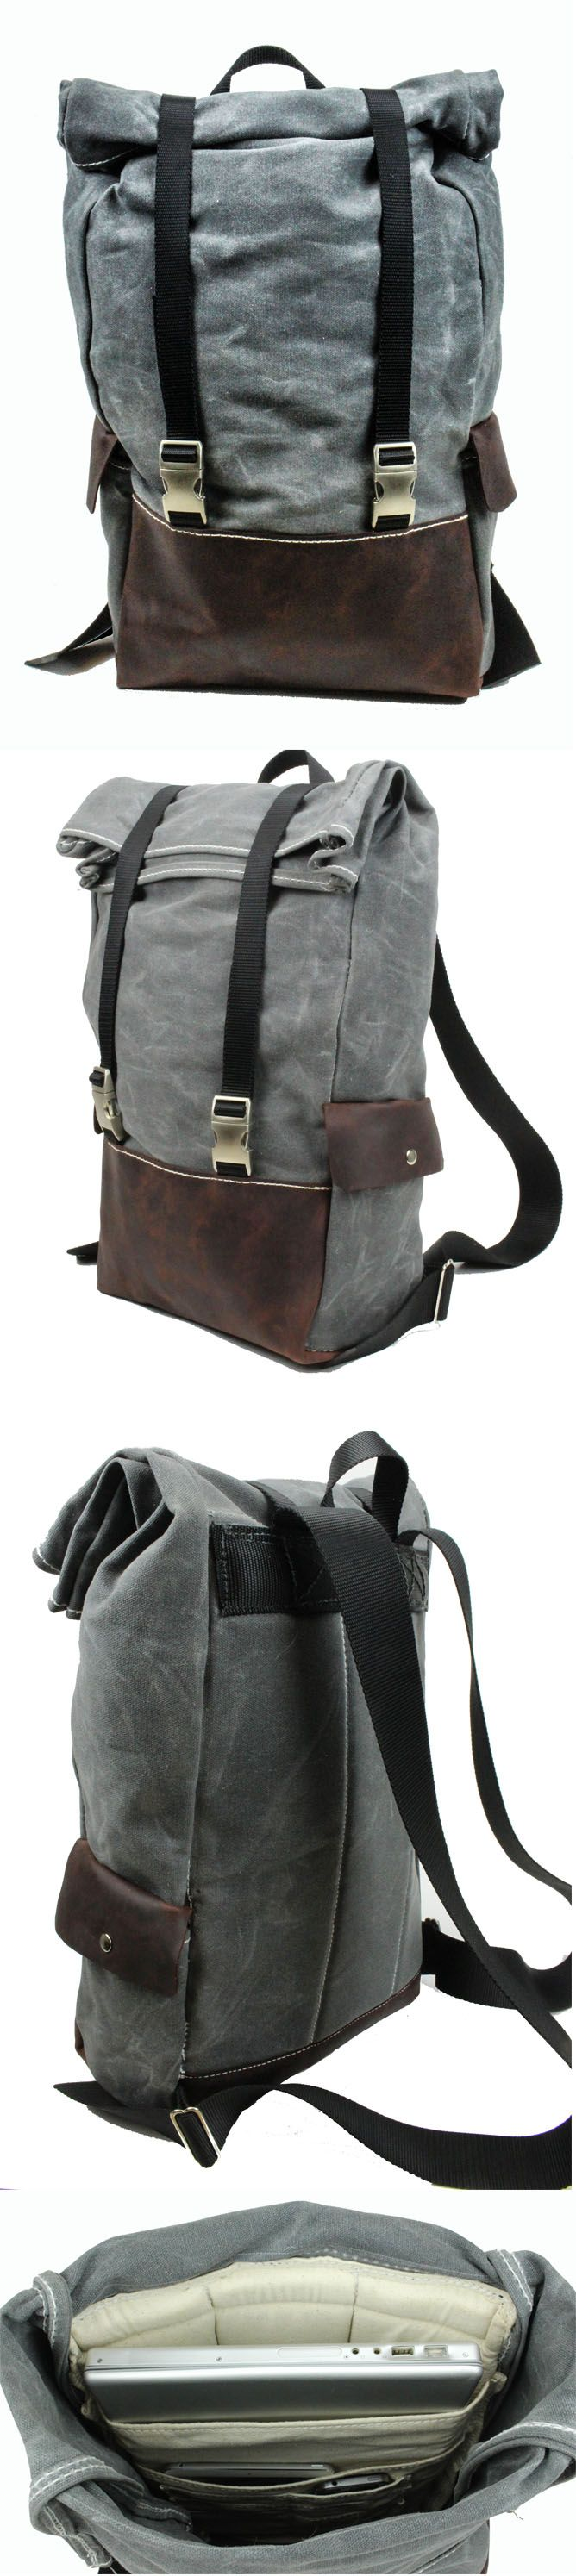 Rugged Material's Weatherproof Roll-top Laptop Backpack. Waxed Canvas, Leather and all metal hardware. Lifetime Guarantee.